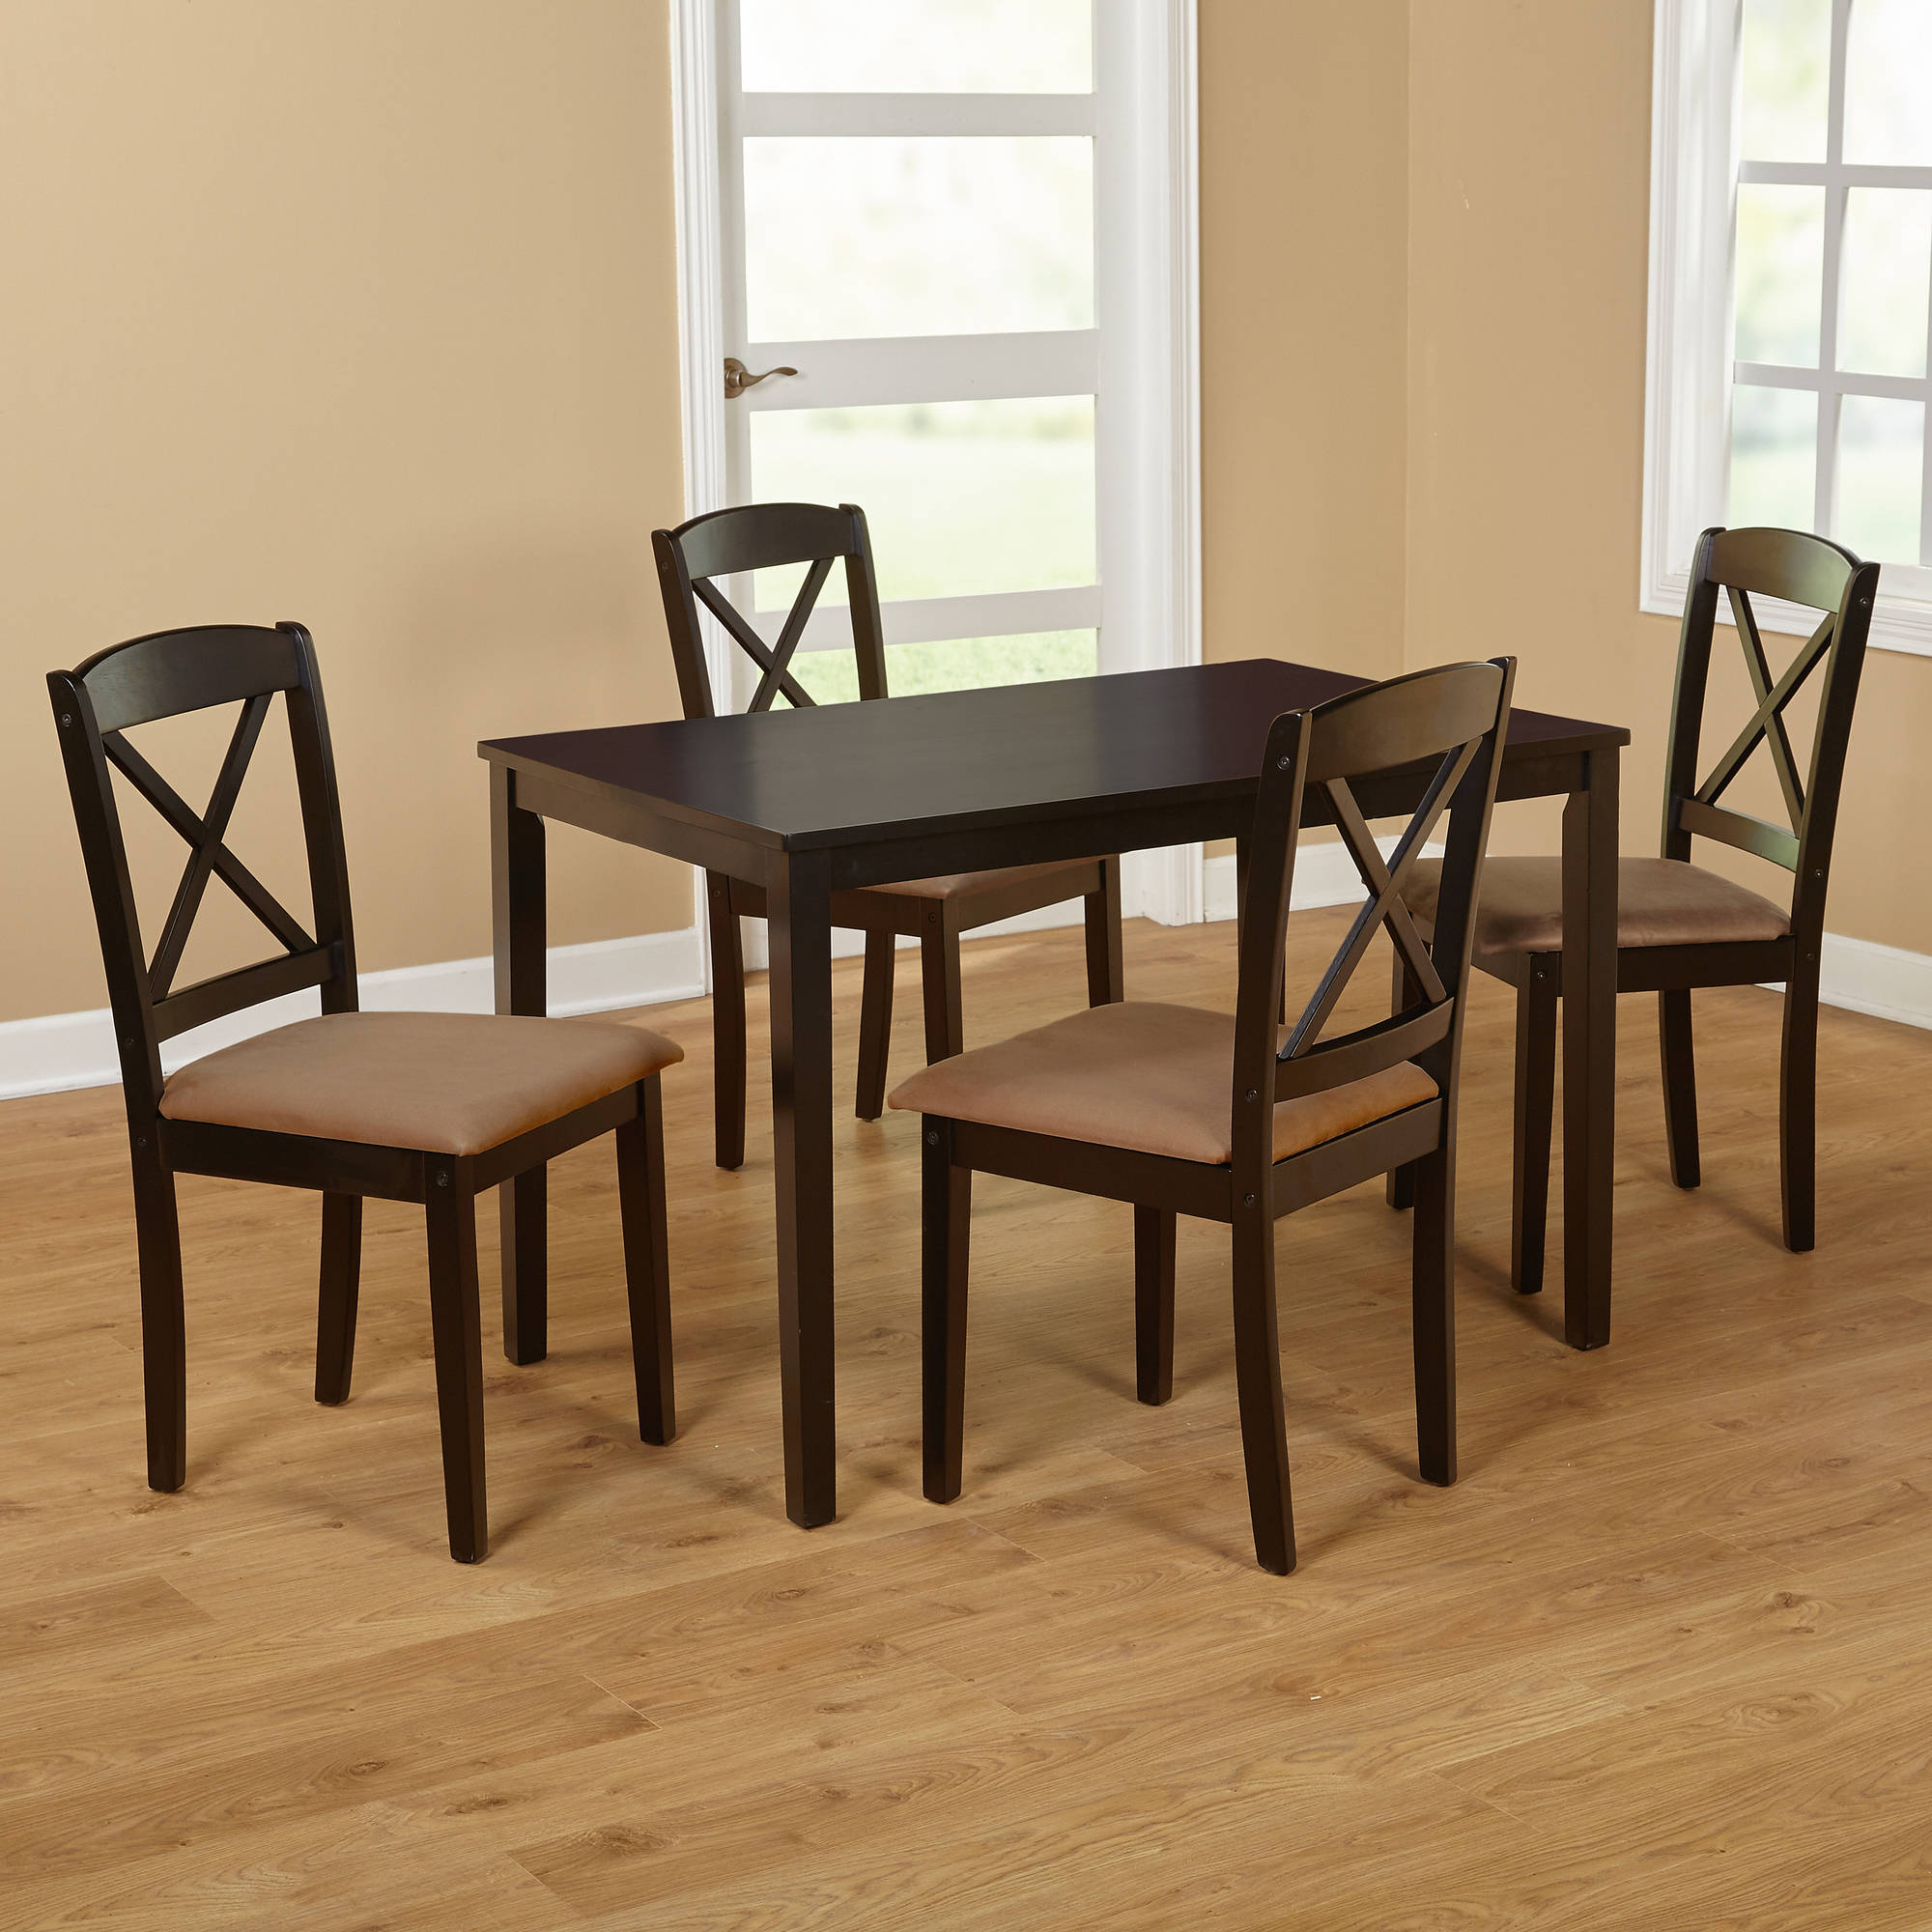 Inspiration about Trendy Tms Mason 5 Piece Cross Back Dining Set, Multiple Colors – Walmart For Cargo 5 Piece Dining Sets (#4 of 20)